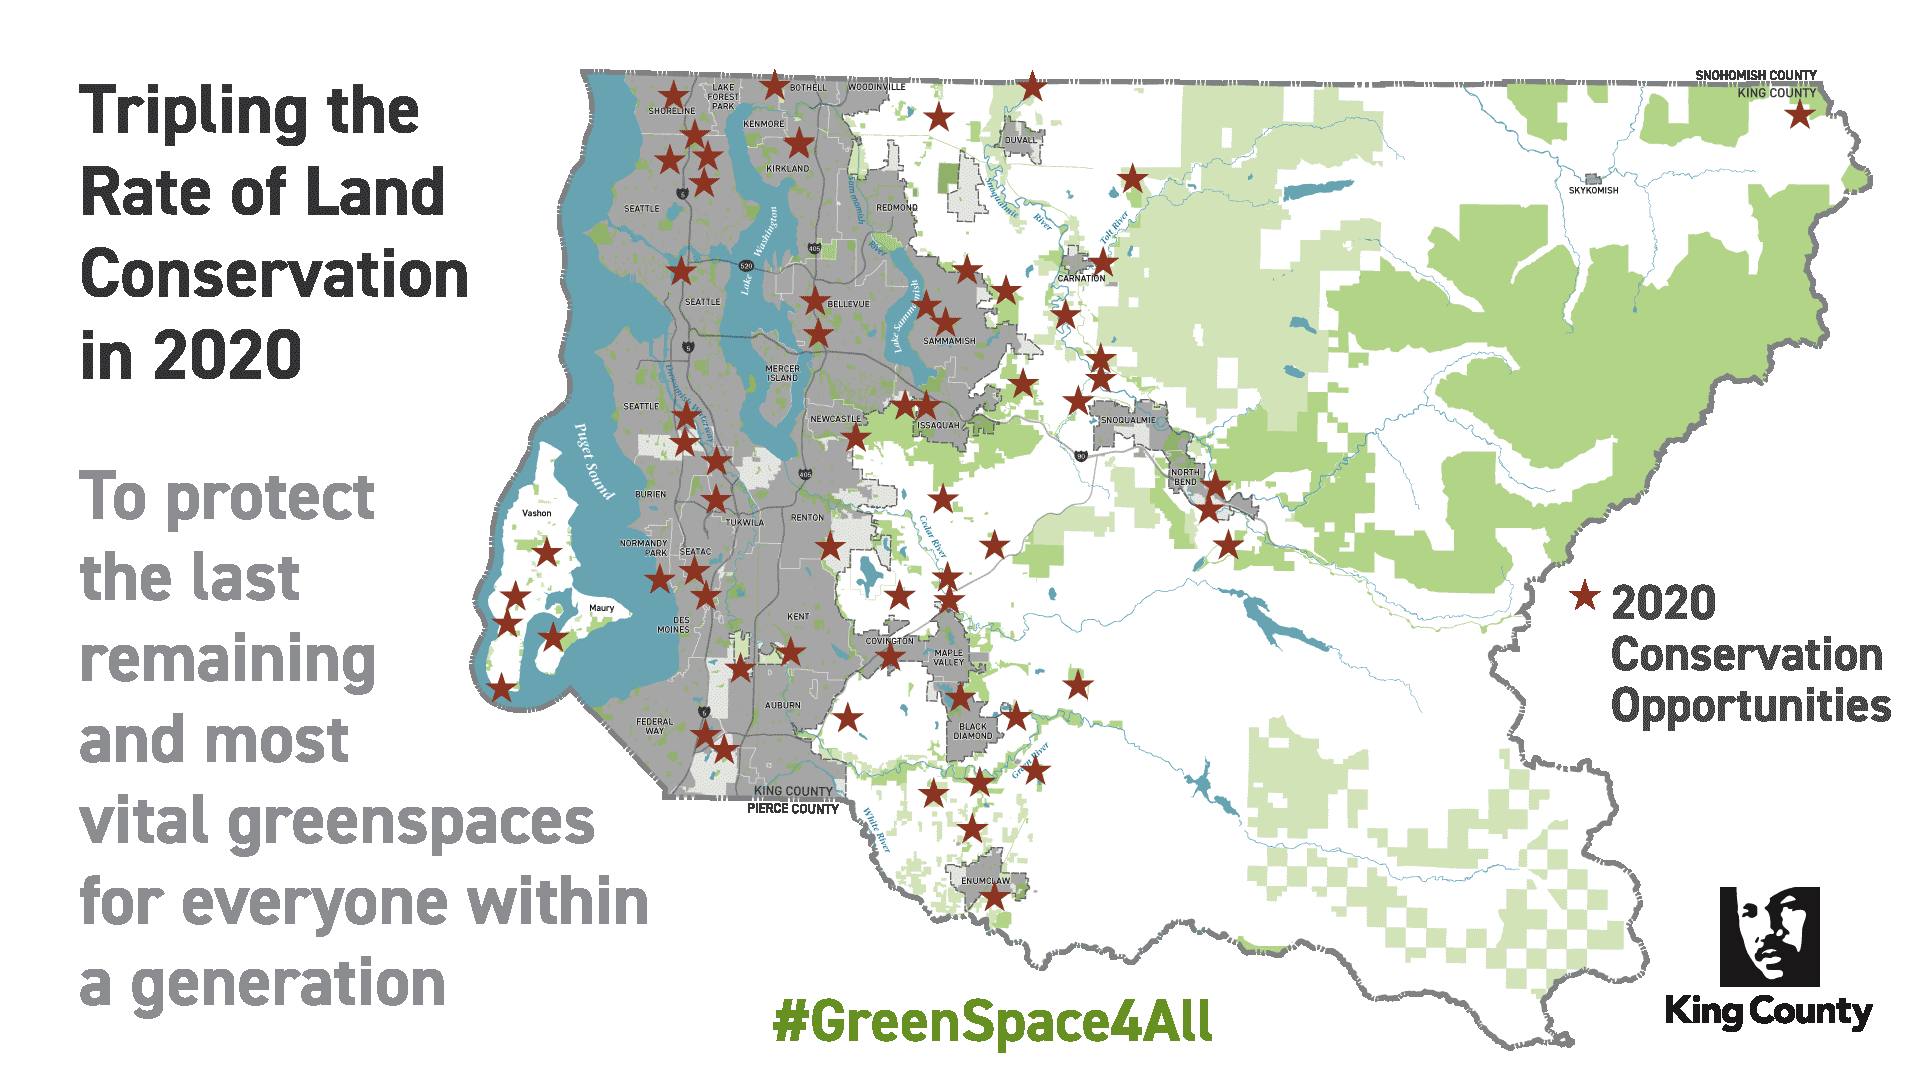 open space land conservation in King County